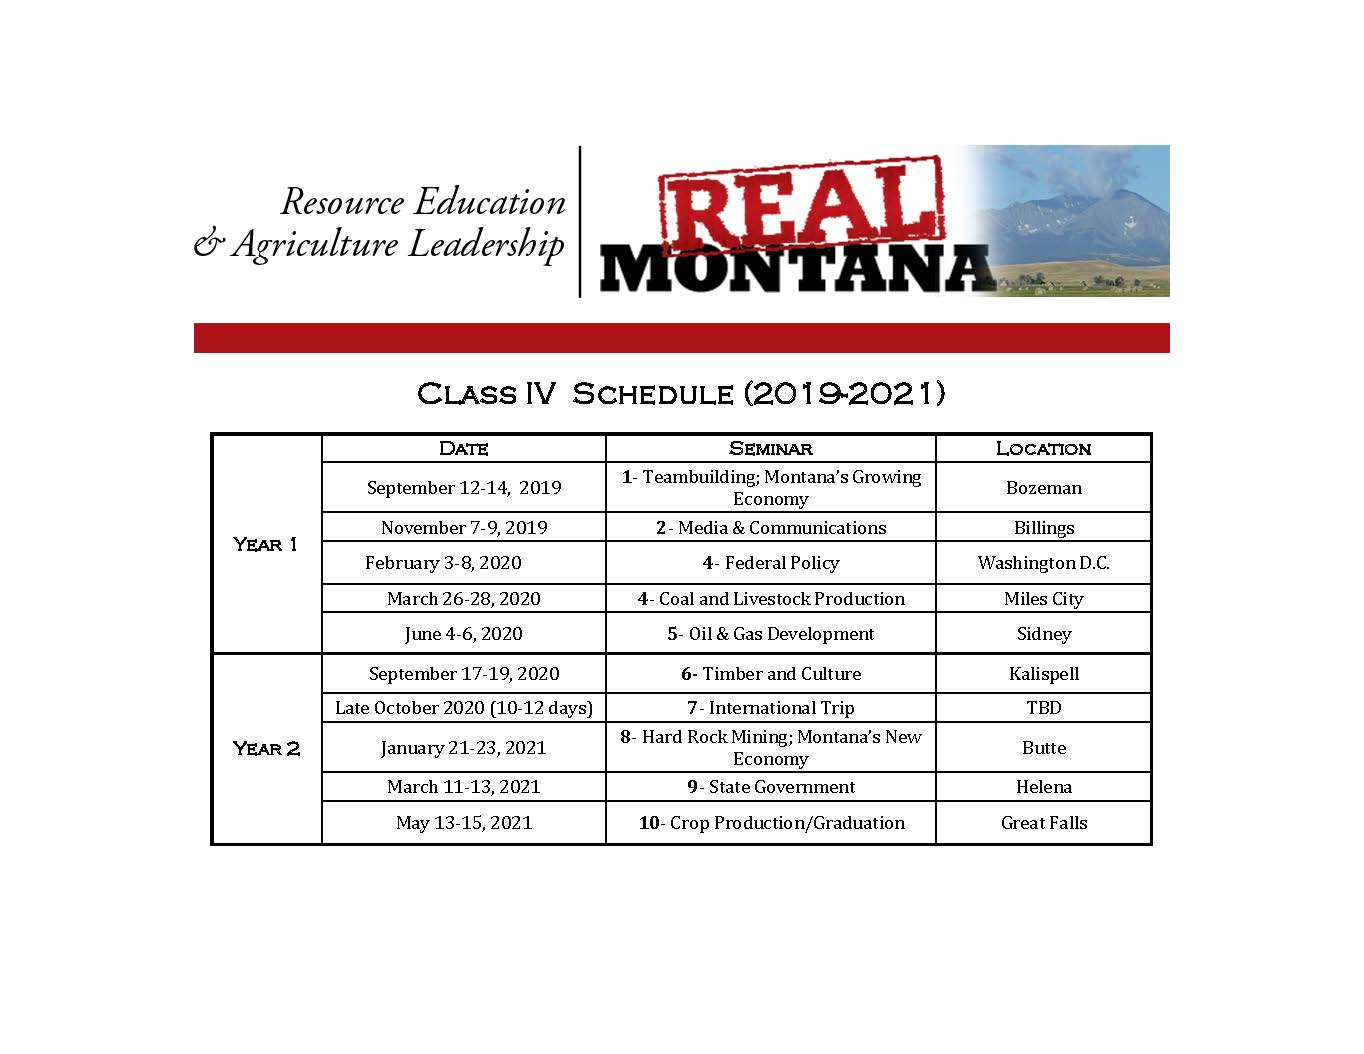 REAL Montana Schedule - MSU Extension - REAL Montana